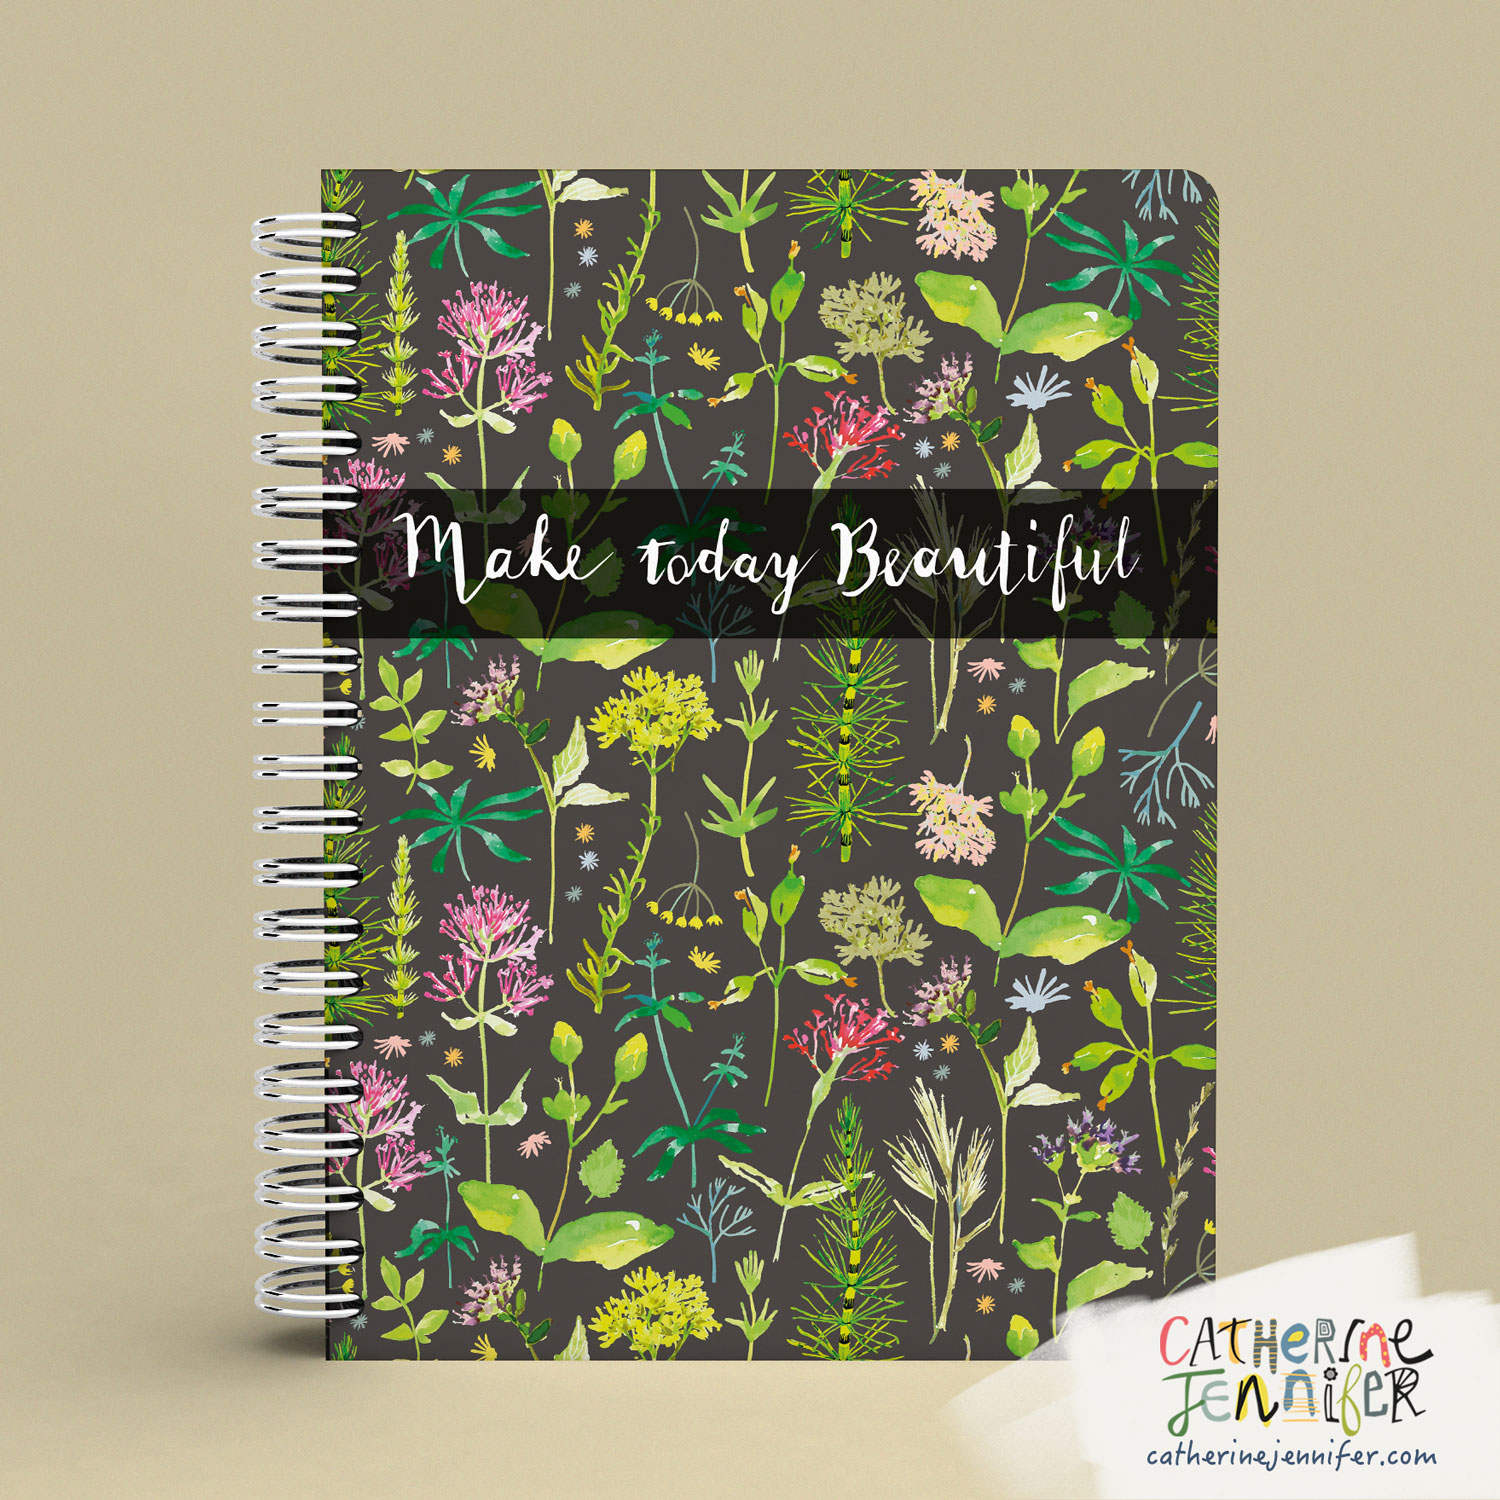 CatherineJennifer_flowers_maketodaybeautiful_Notebook.jpg